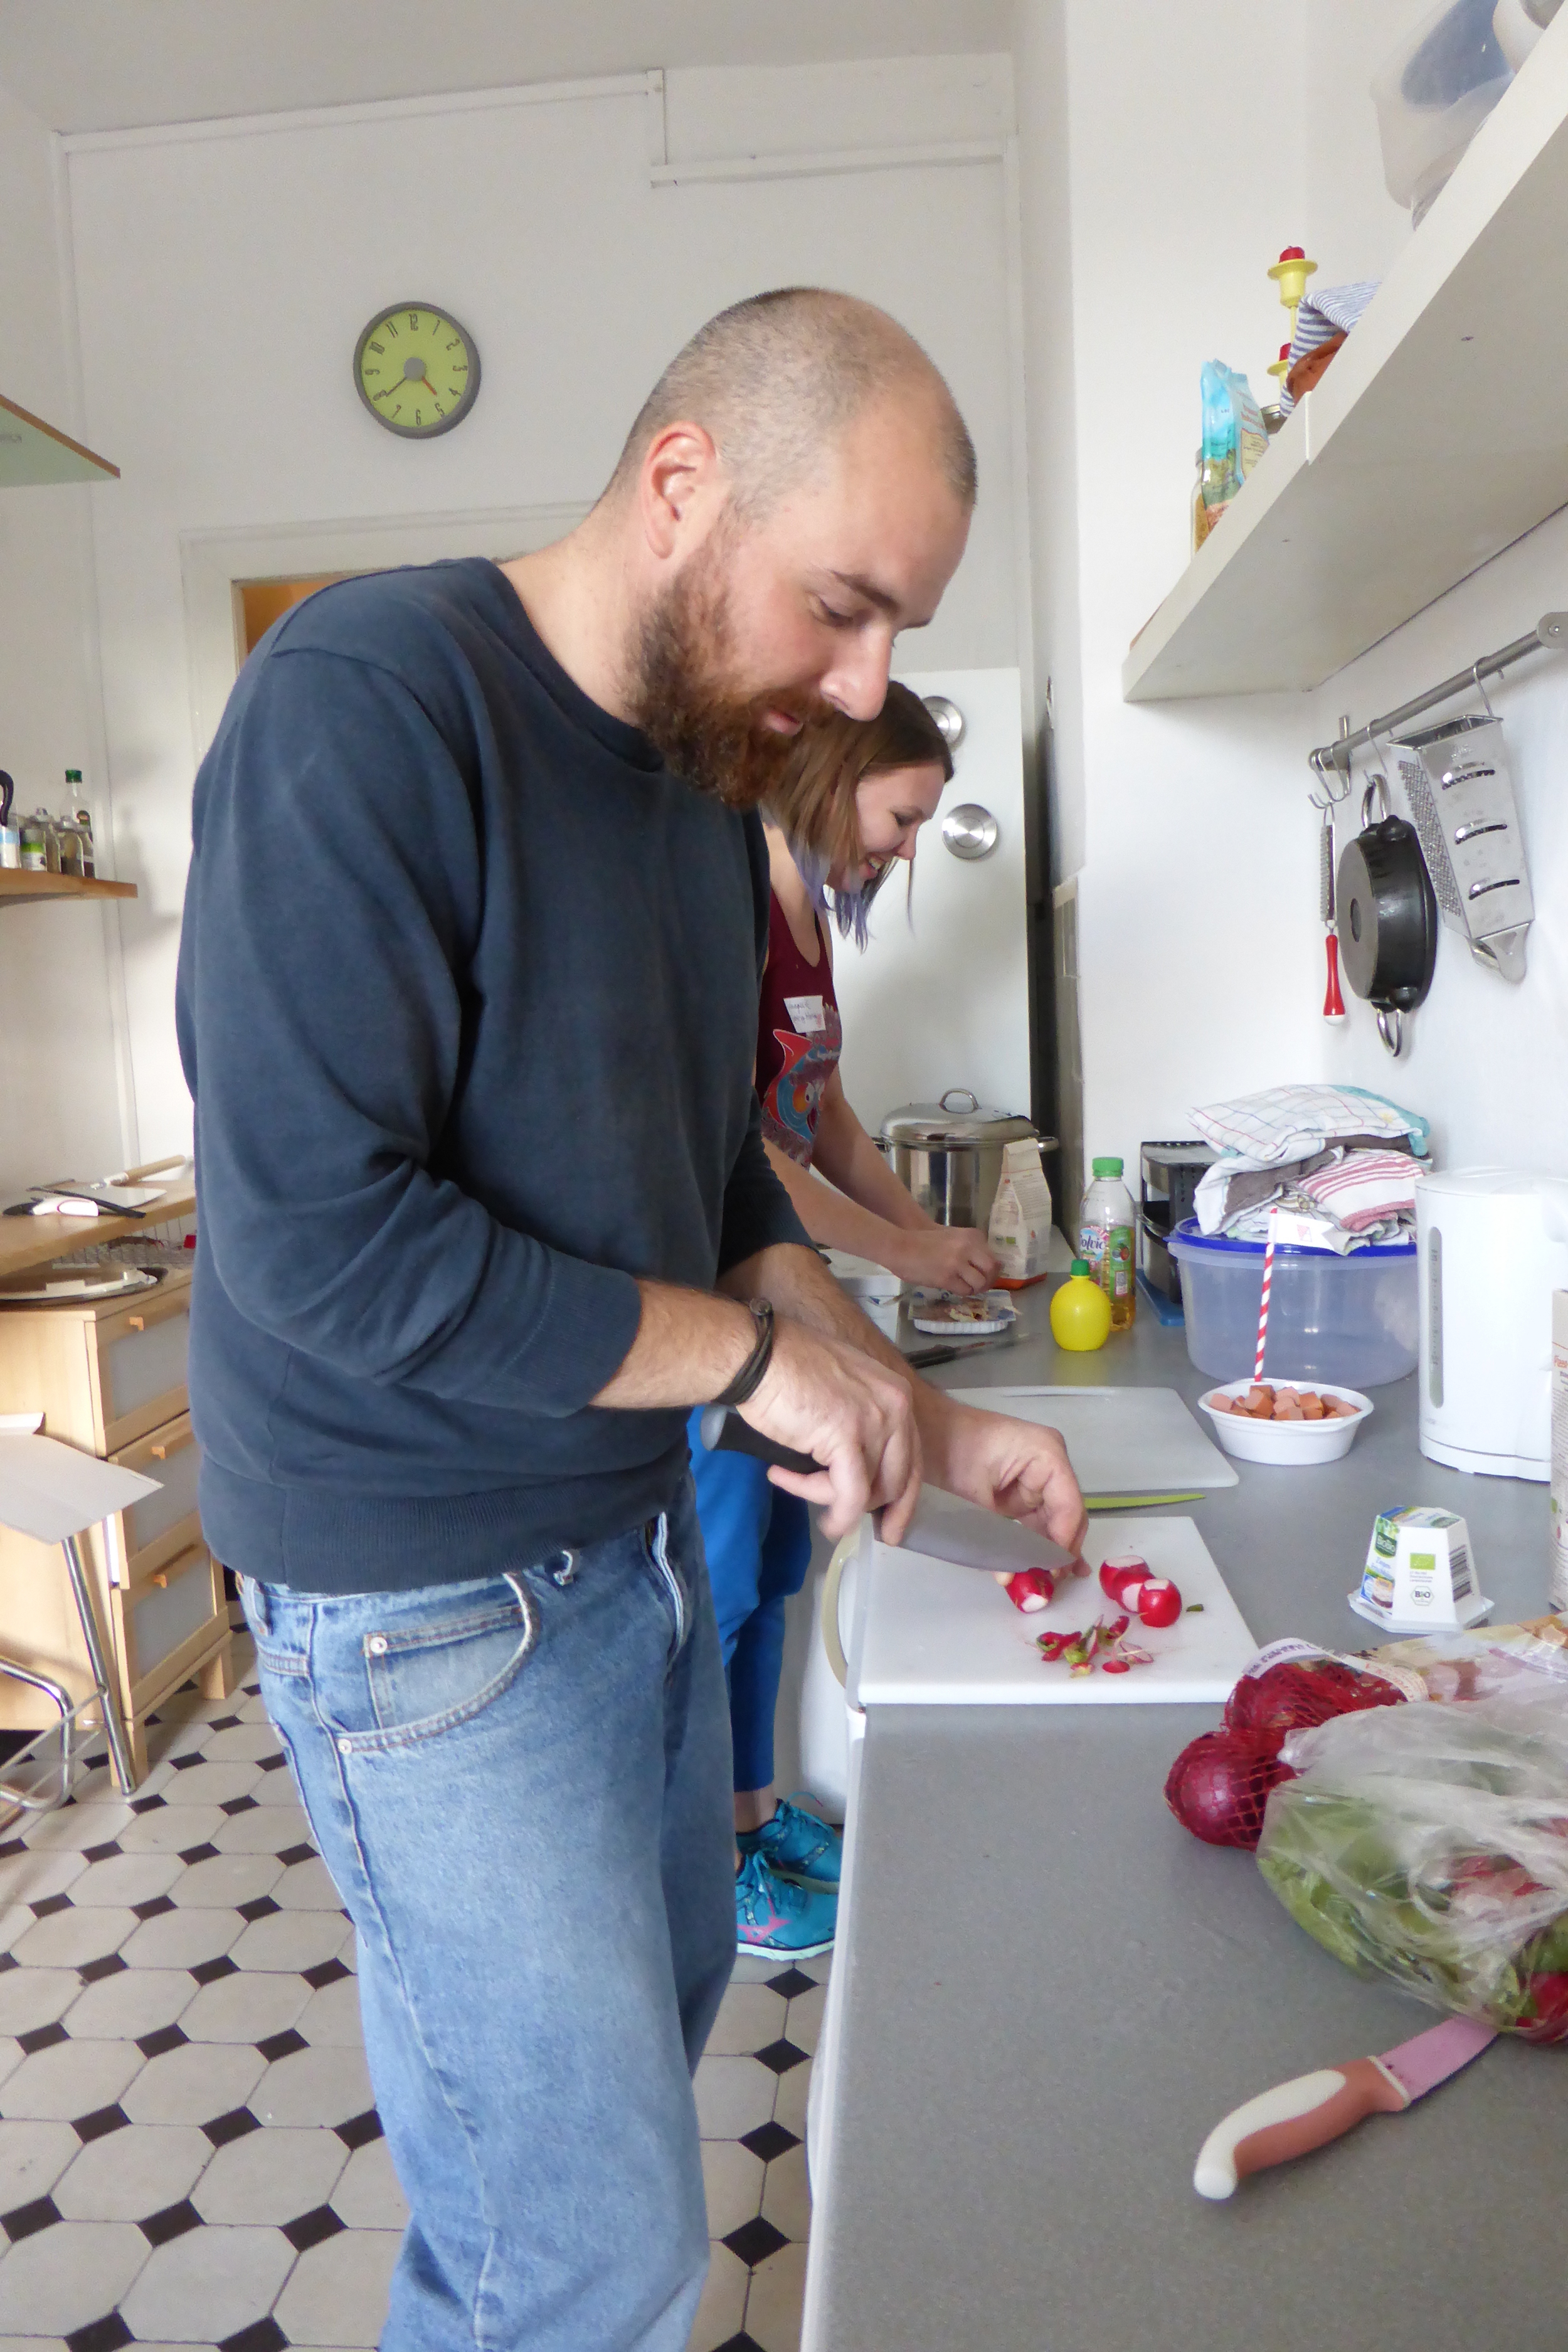 dustincutting radishes.JPG